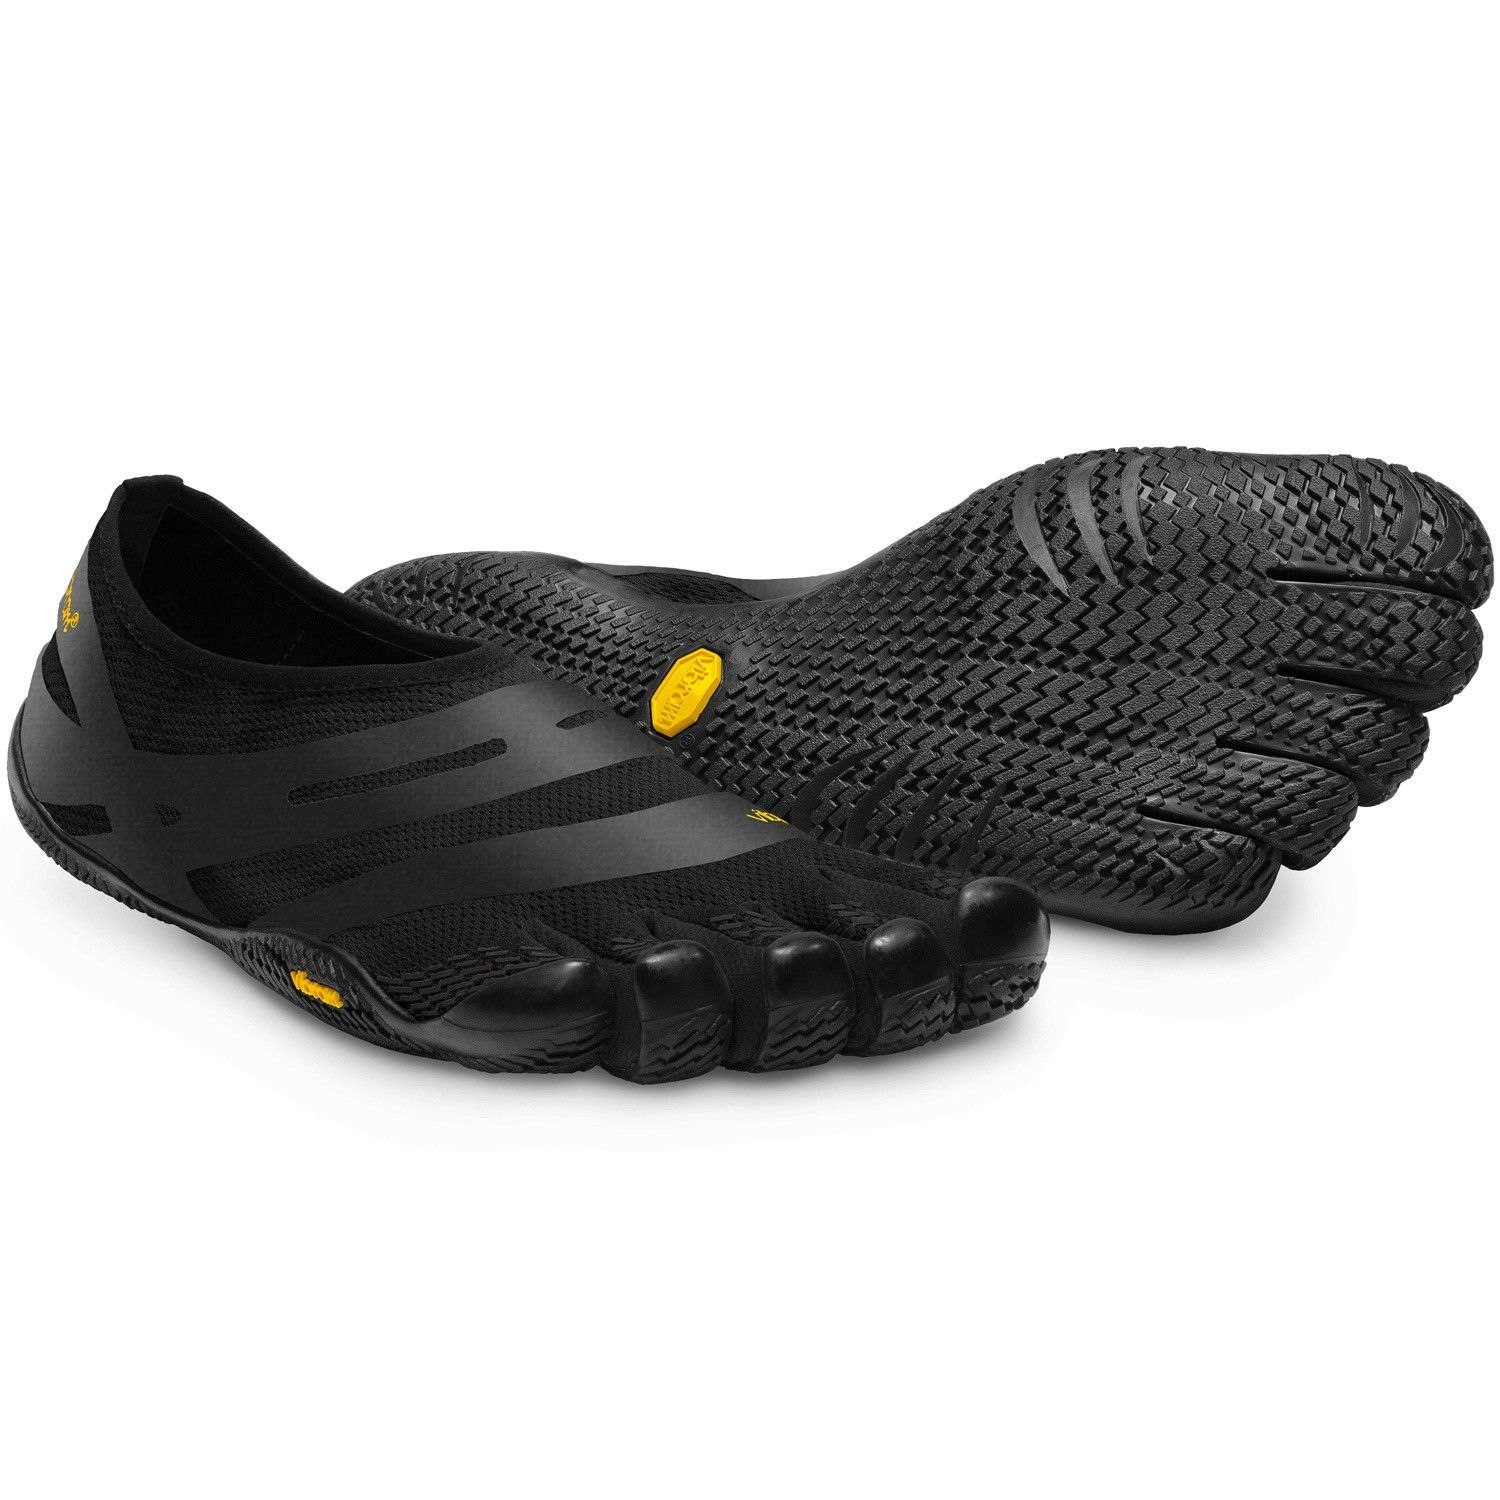 Vibram's thinnest sole, the EL-X offers the most ground feedback possible.  Designed to be simple, comfortable, easy on, easy off – the EL-X is an  ideal shoe ...